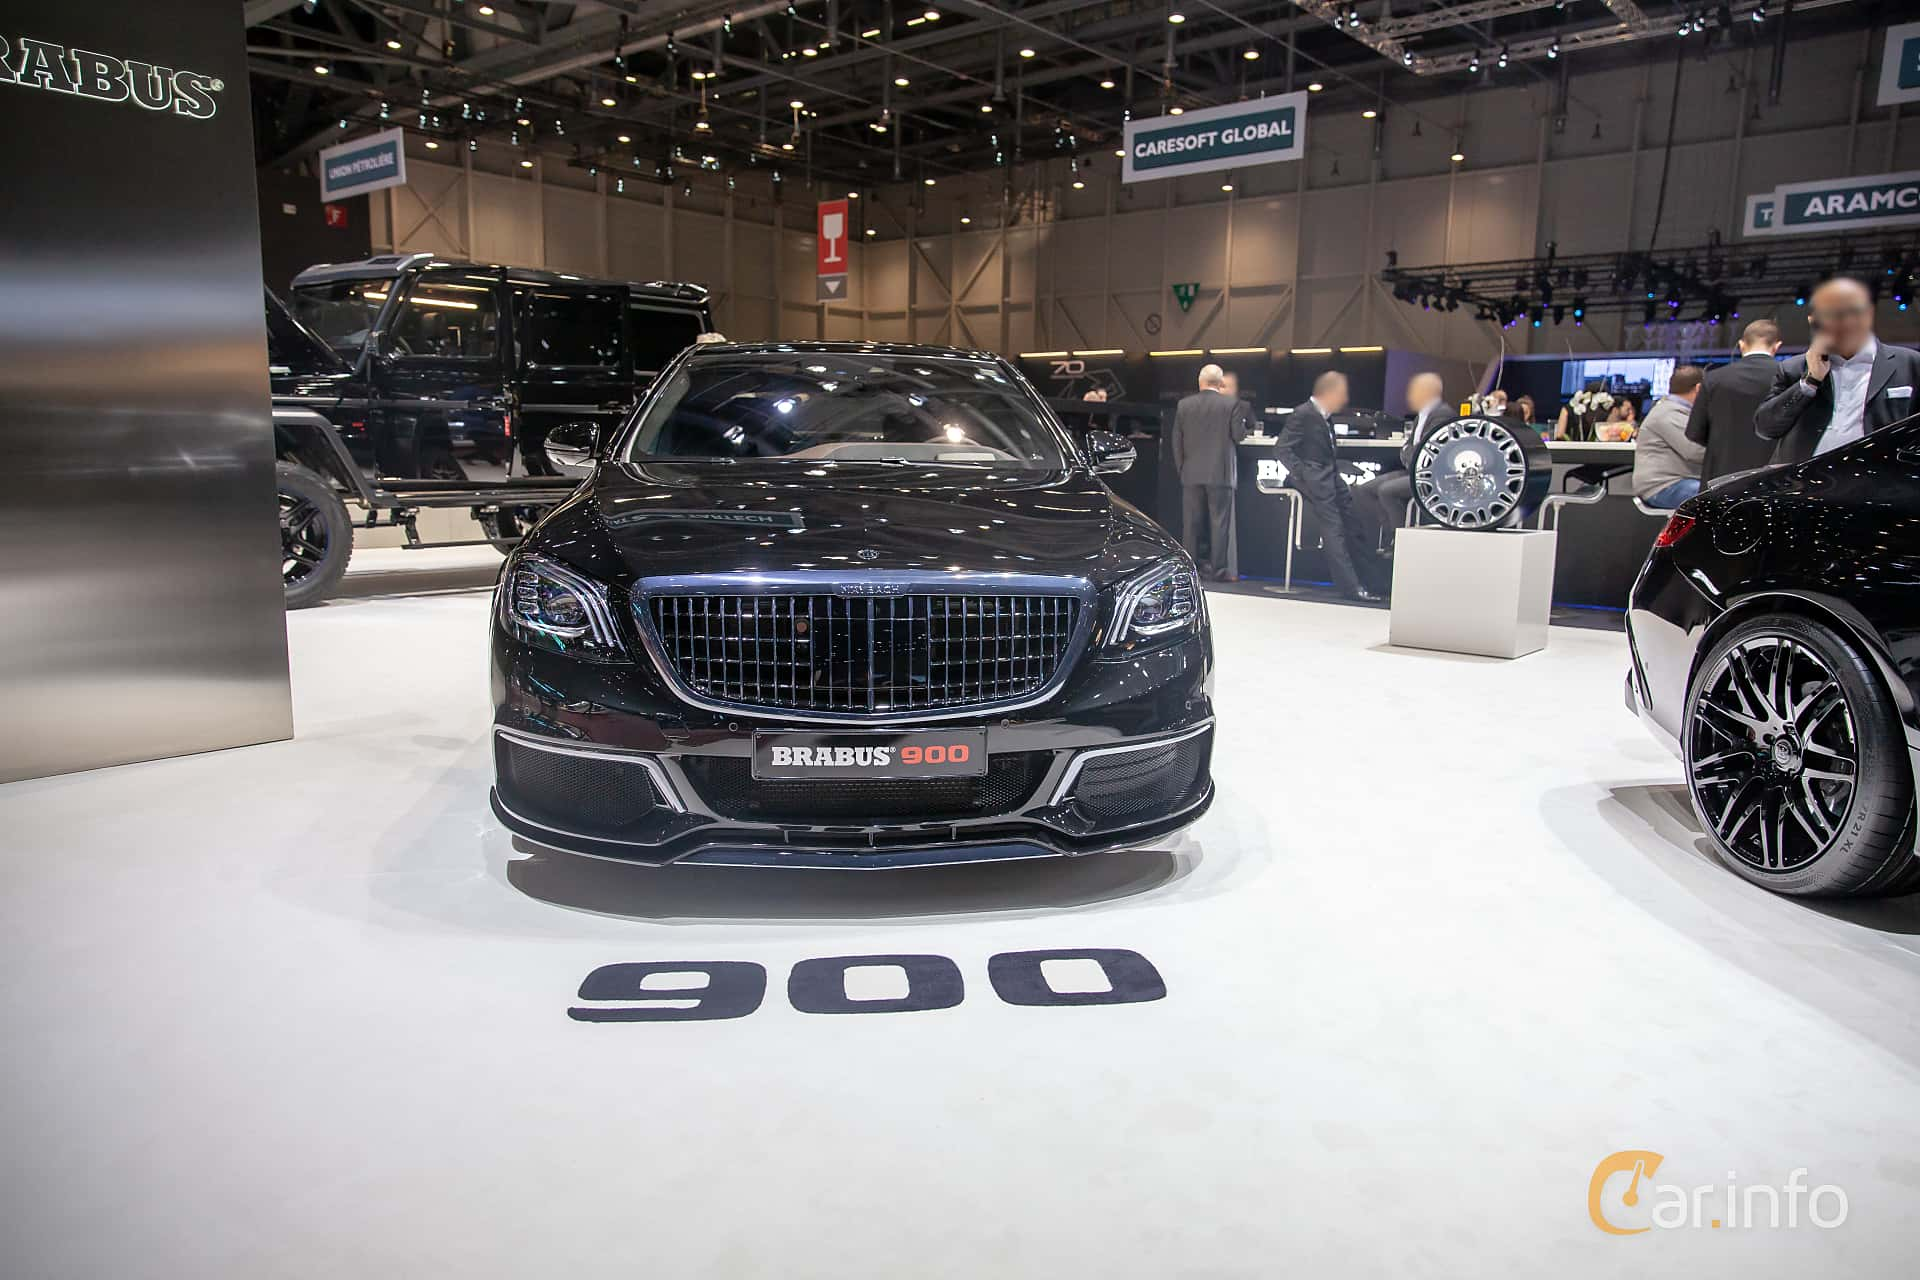 Front  of Brabus S 900 Maybach  9G-Tronic, 900ps, 2019 at Geneva Motor Show 2019